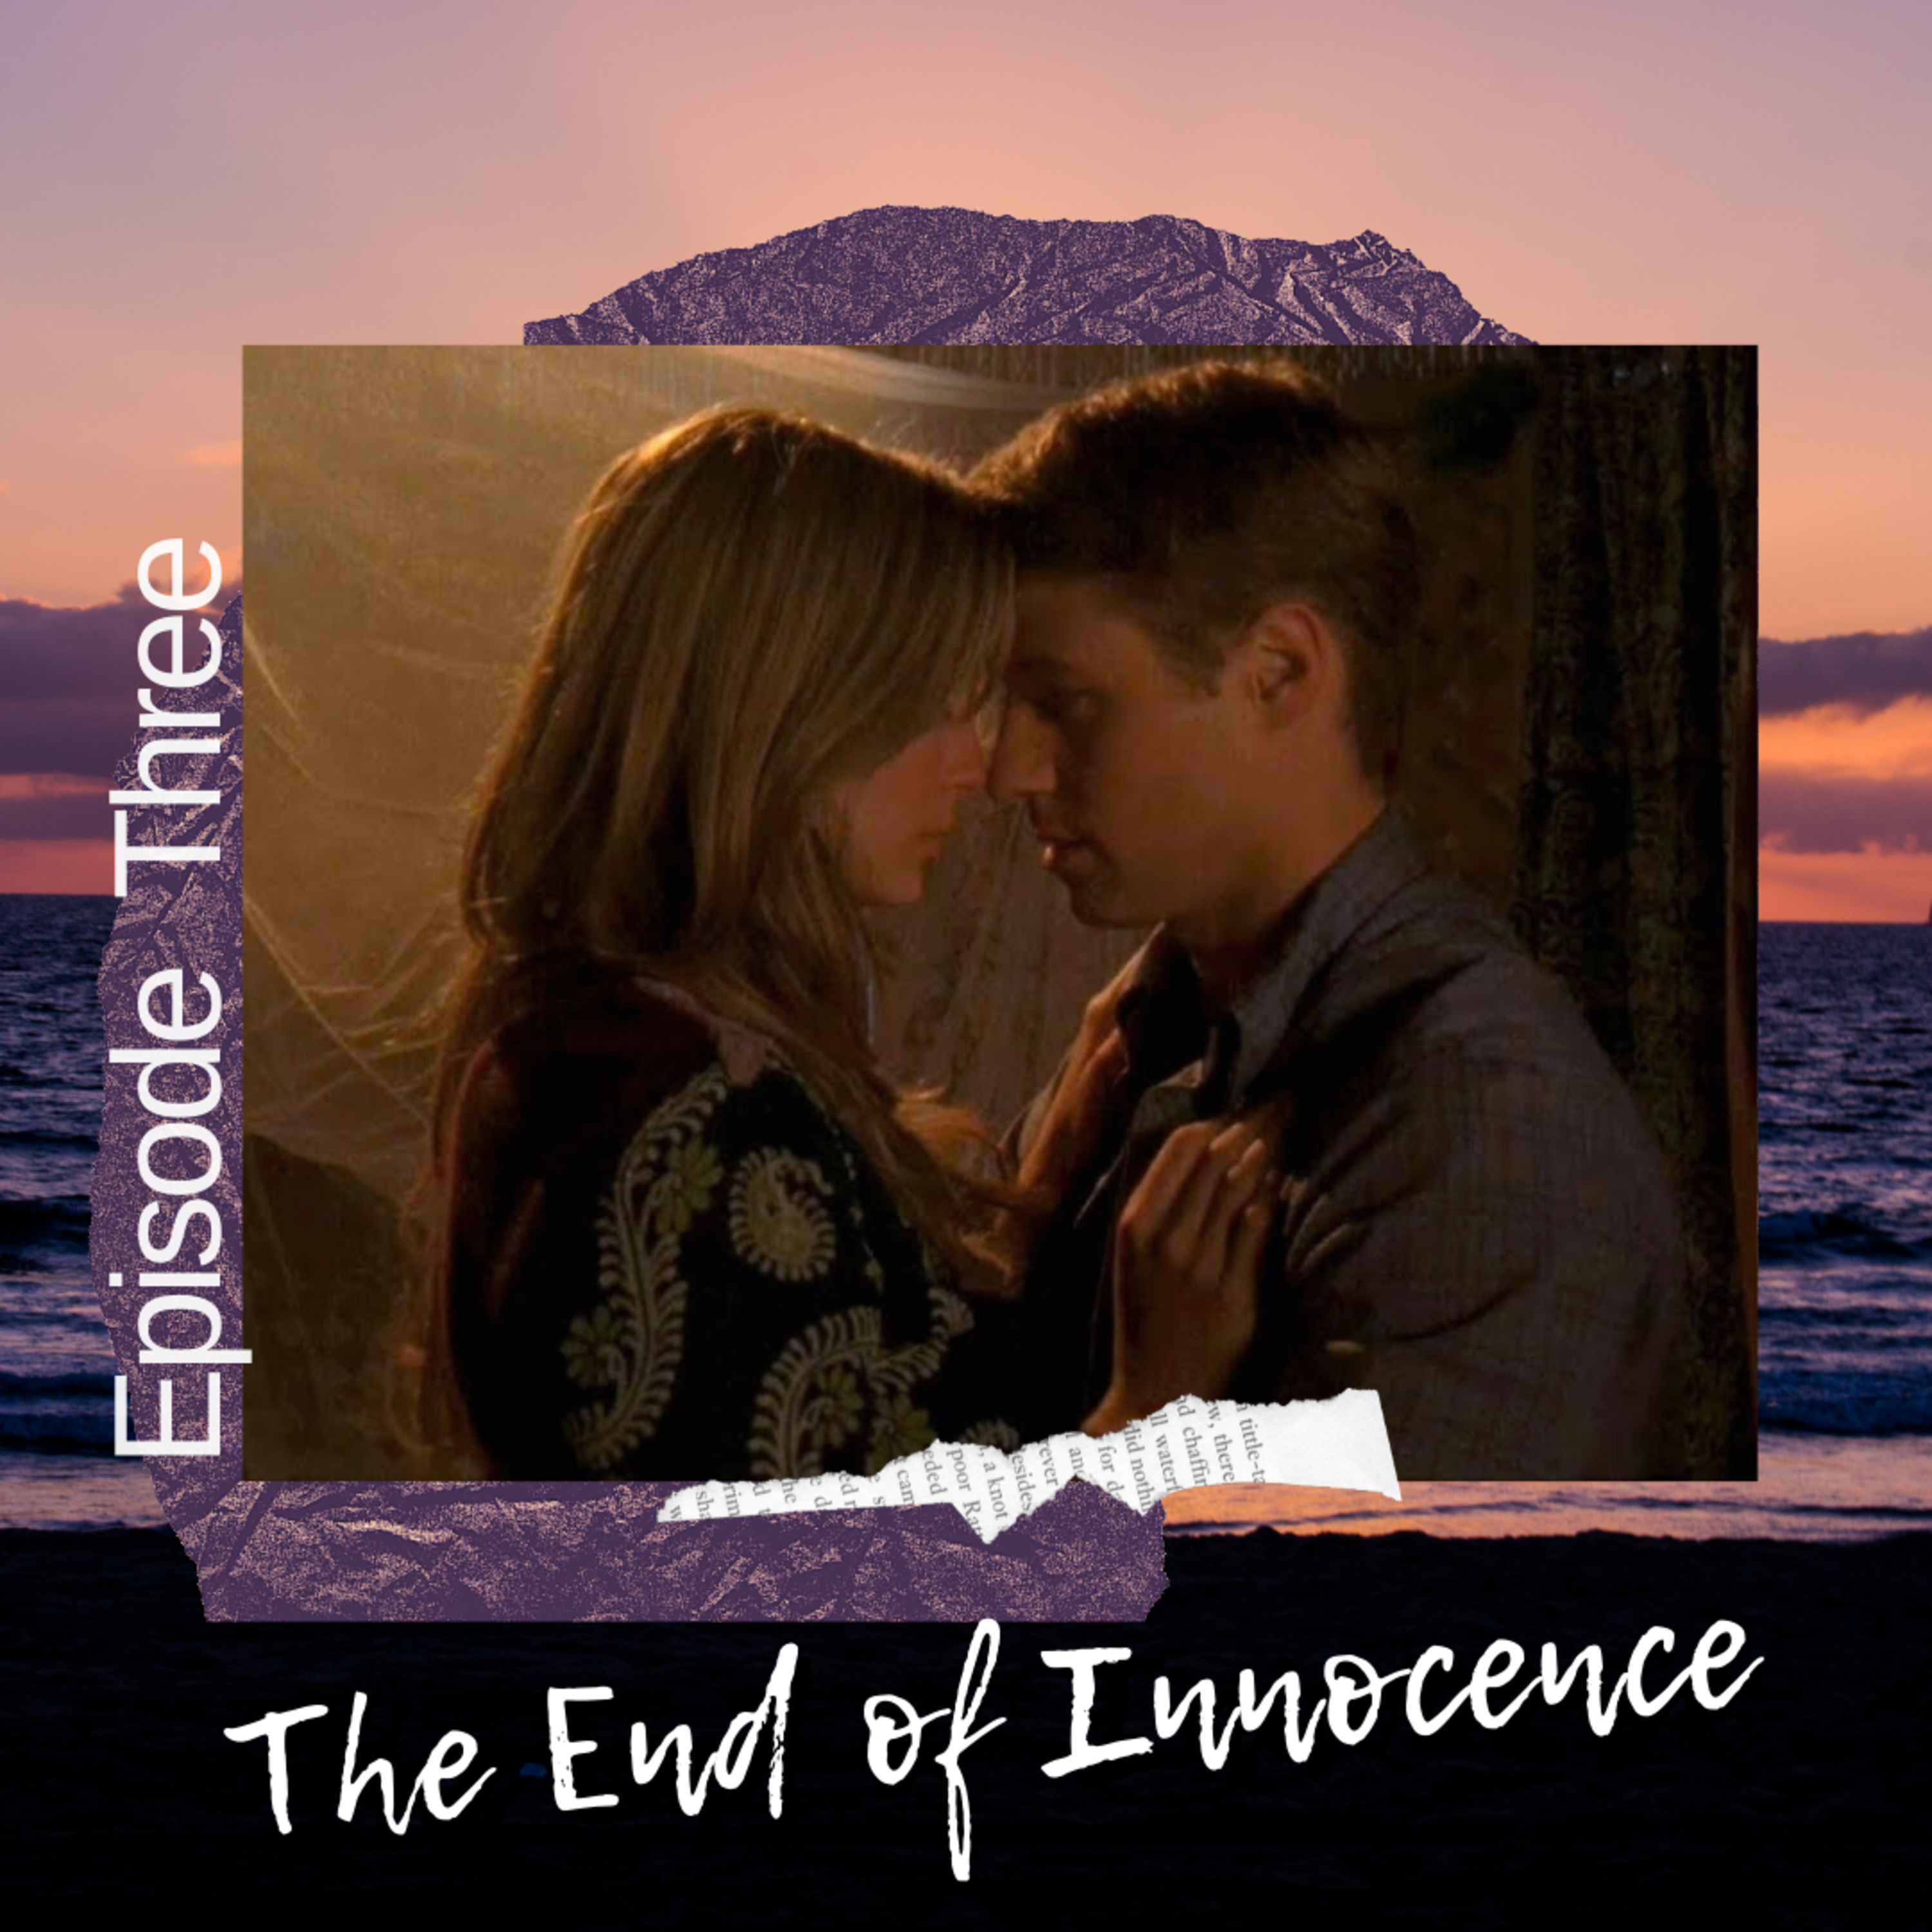 S3E3: The End of Innocence